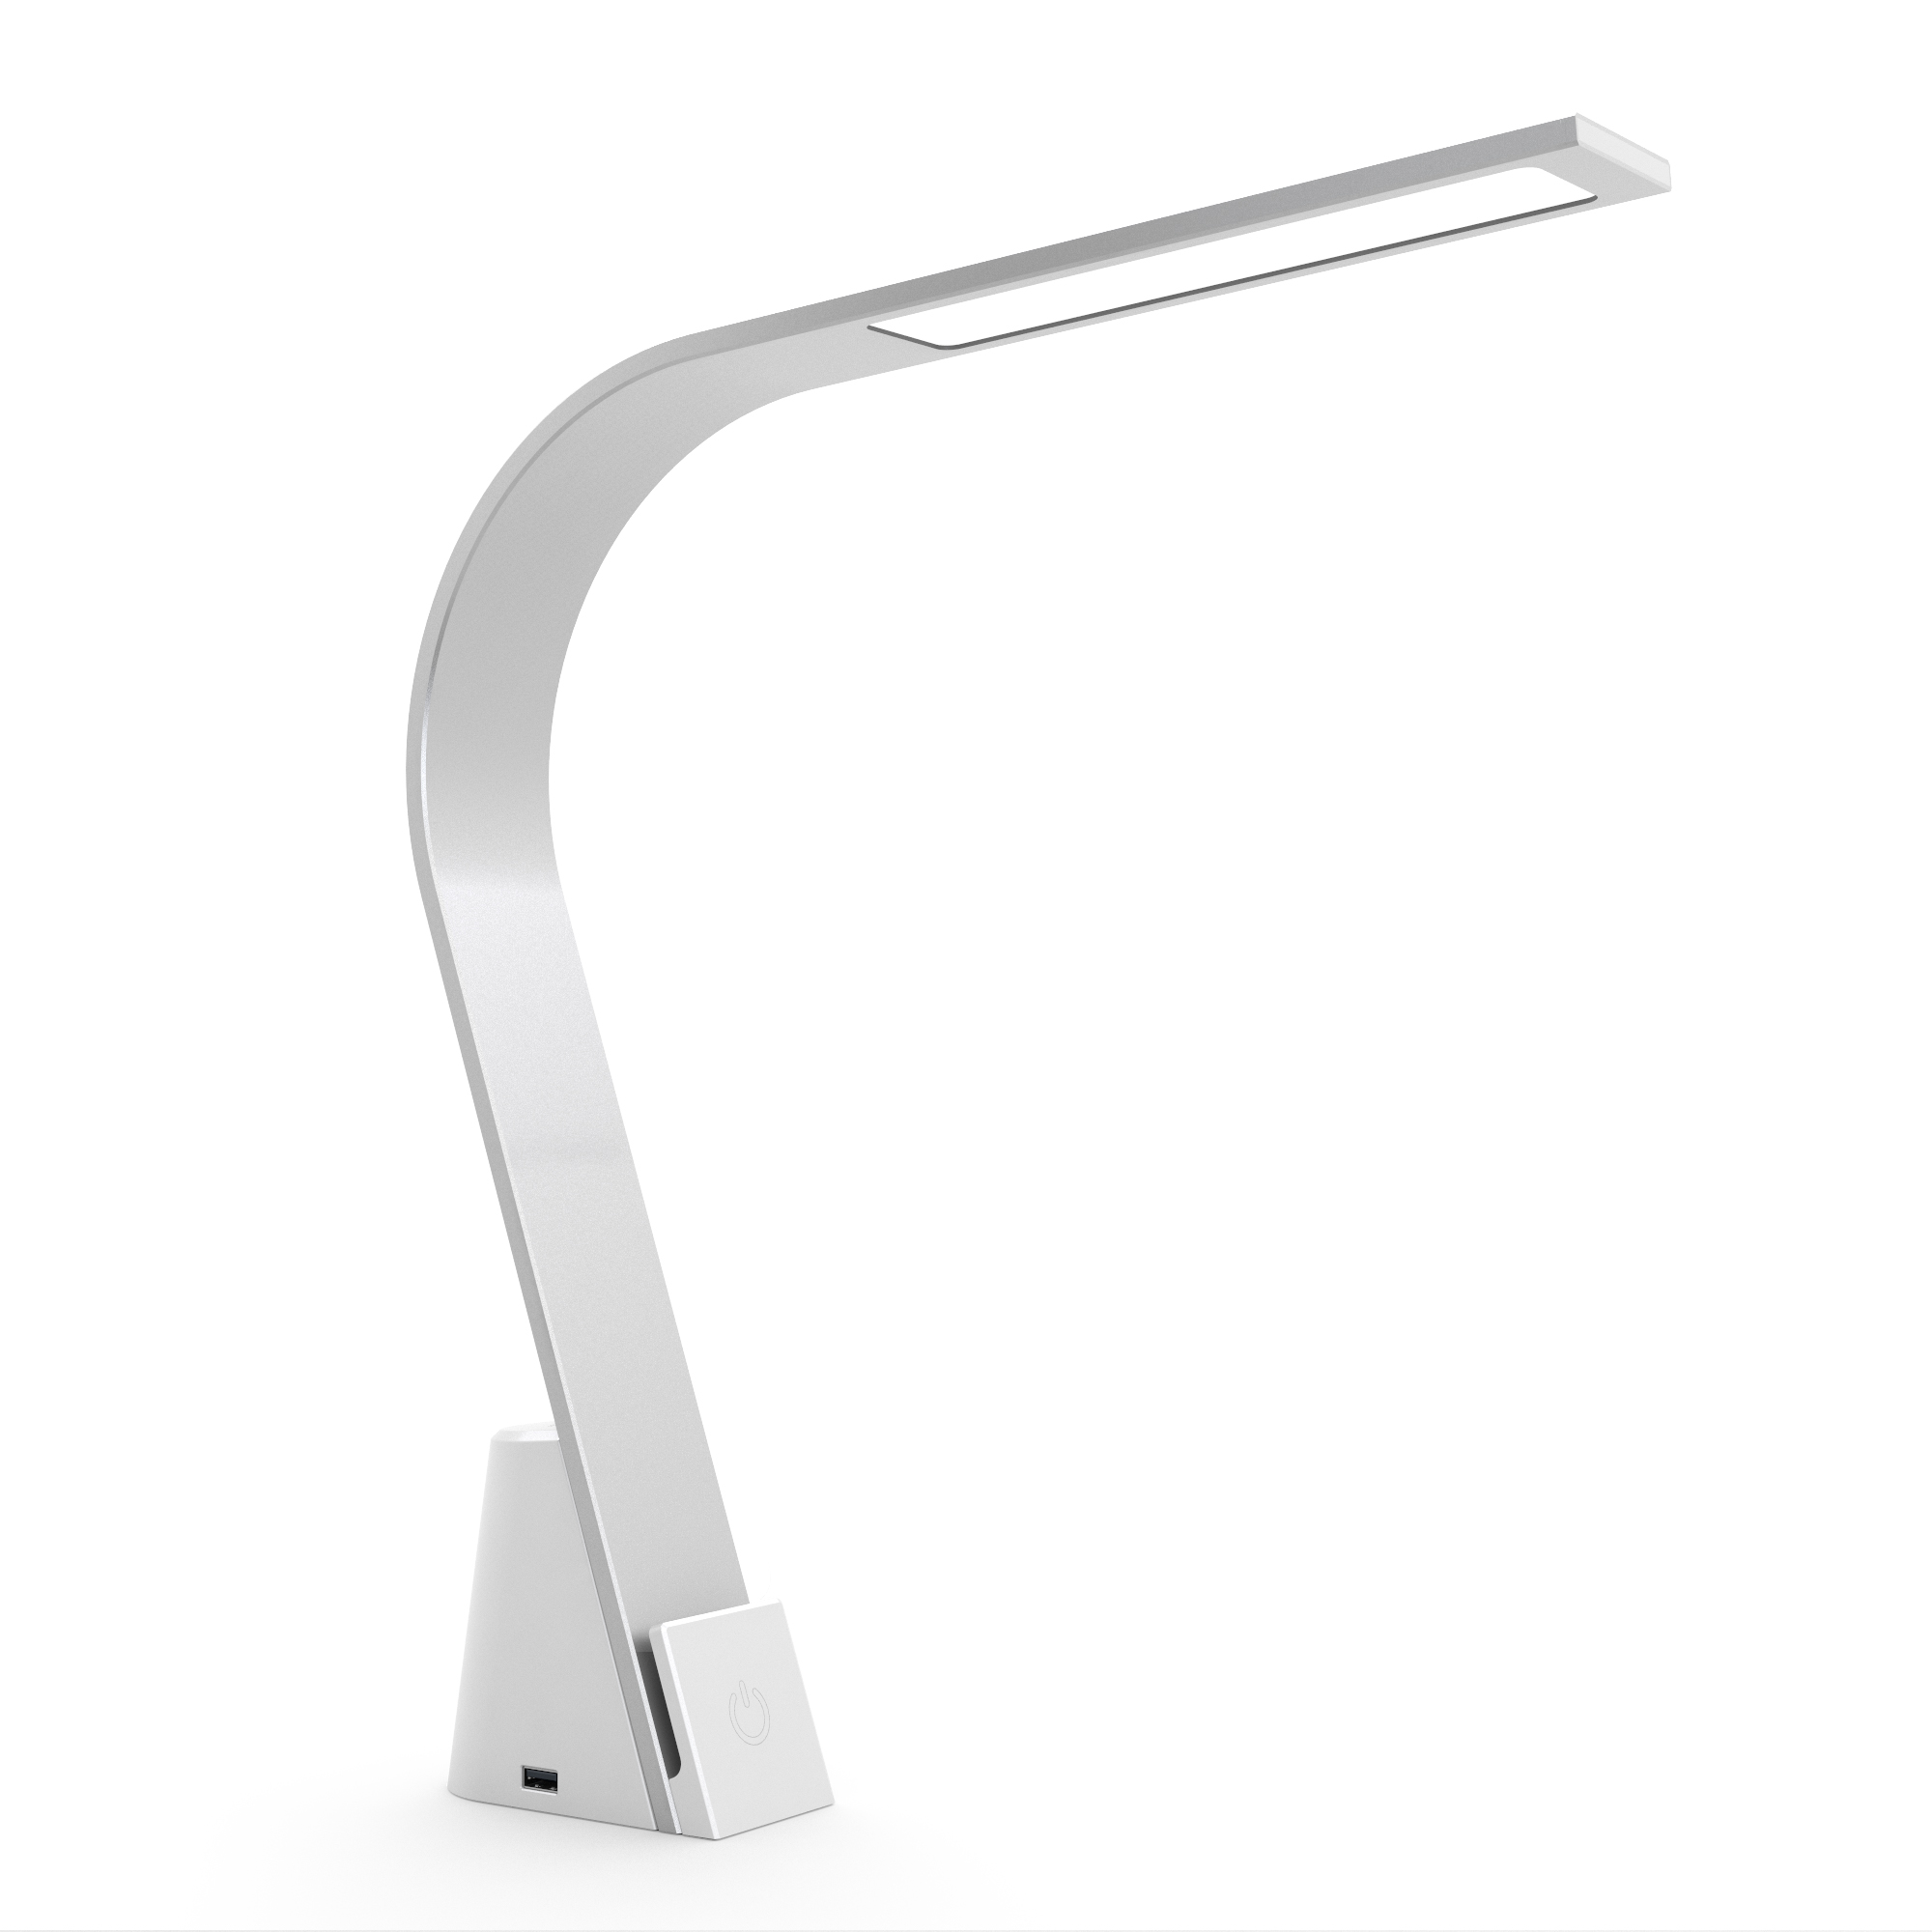 Design Journal, ADEX Awards | LUX Brooklyn USB LED Task ...